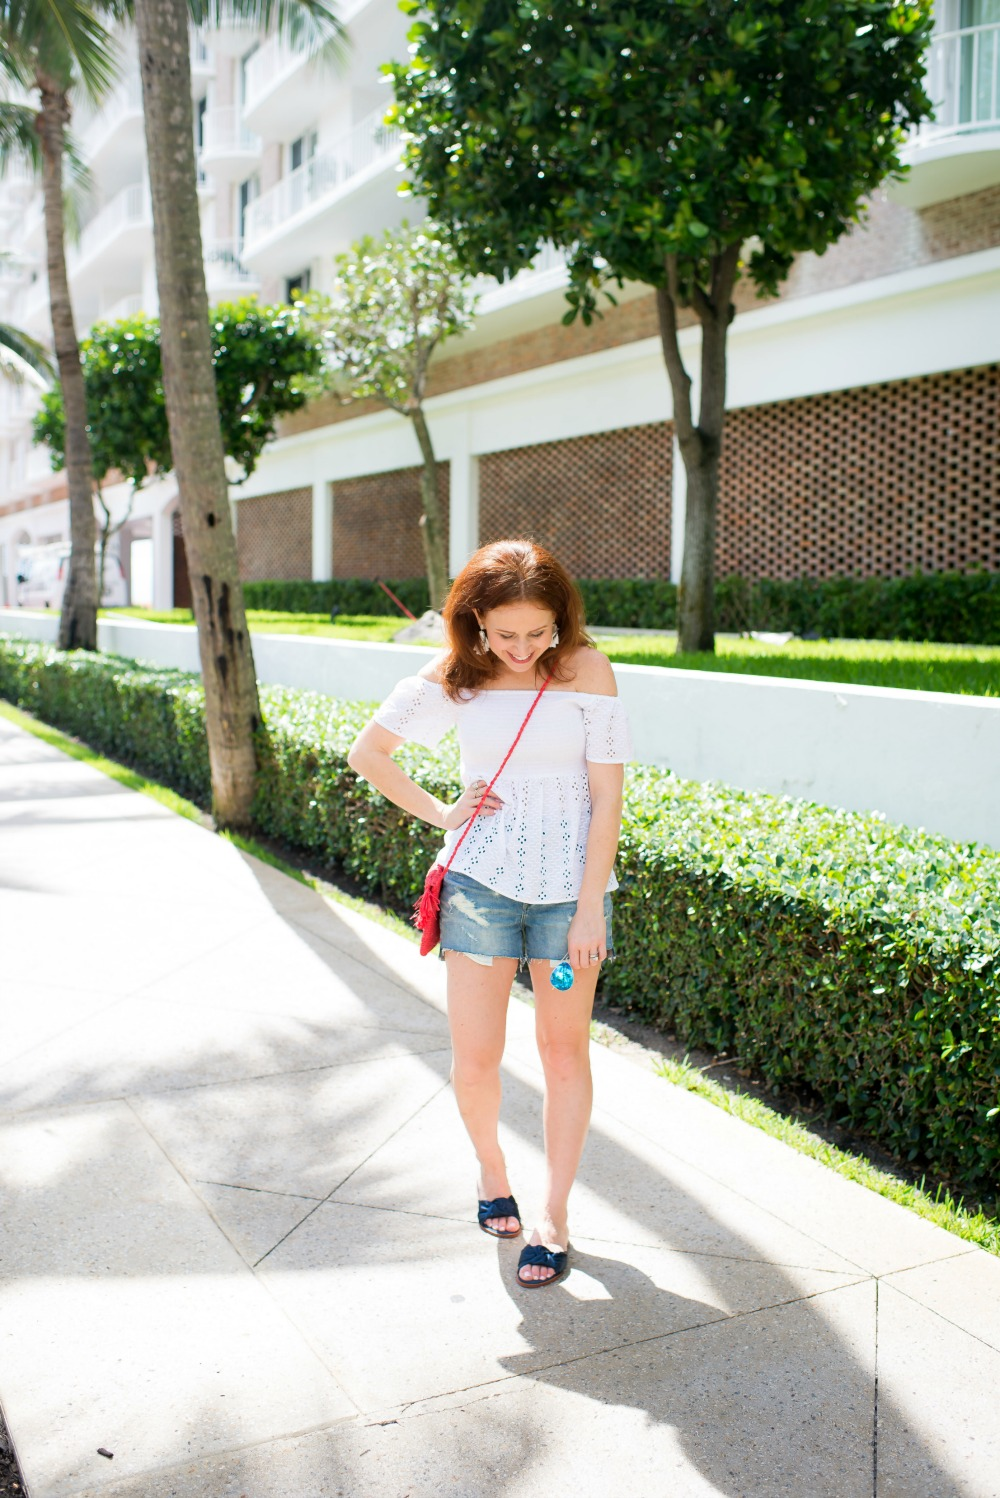 Casual cute 4th of July outfit ideas - Casual Cute 4th of July Outfit featured by popular Florida style blogger, The Modern Savvy